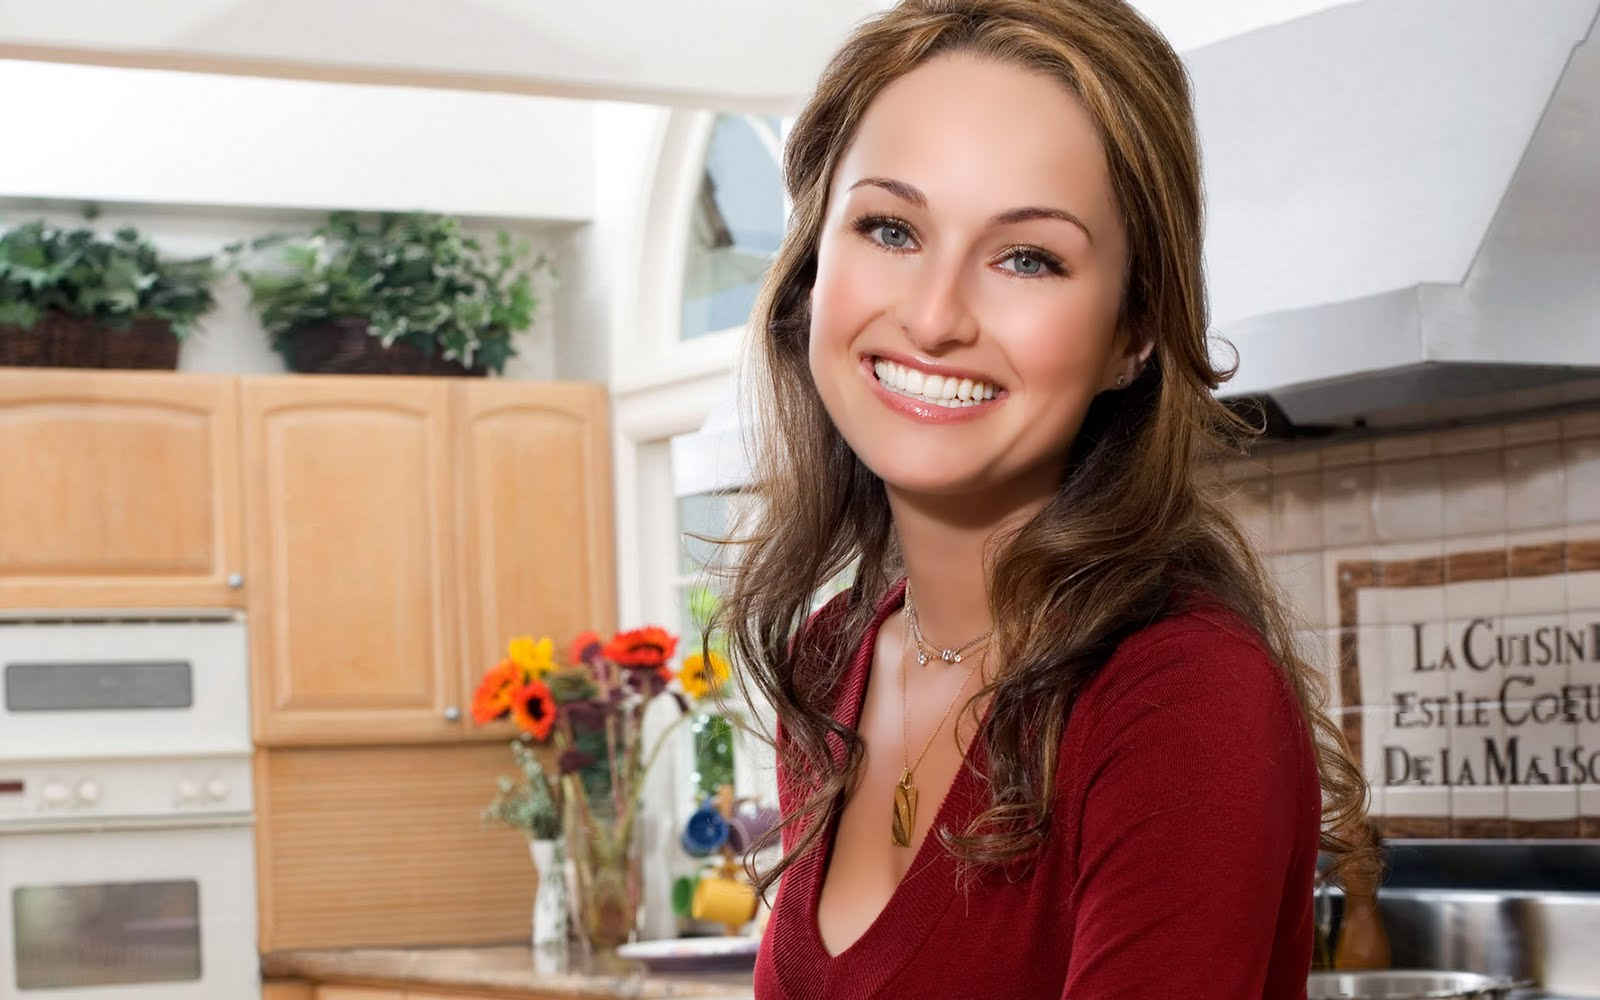 Giada de Laurentiis shows us the secret to delicious roasted root vegetables—a quick and easy side dish that will round out your Thanksgiving meal.